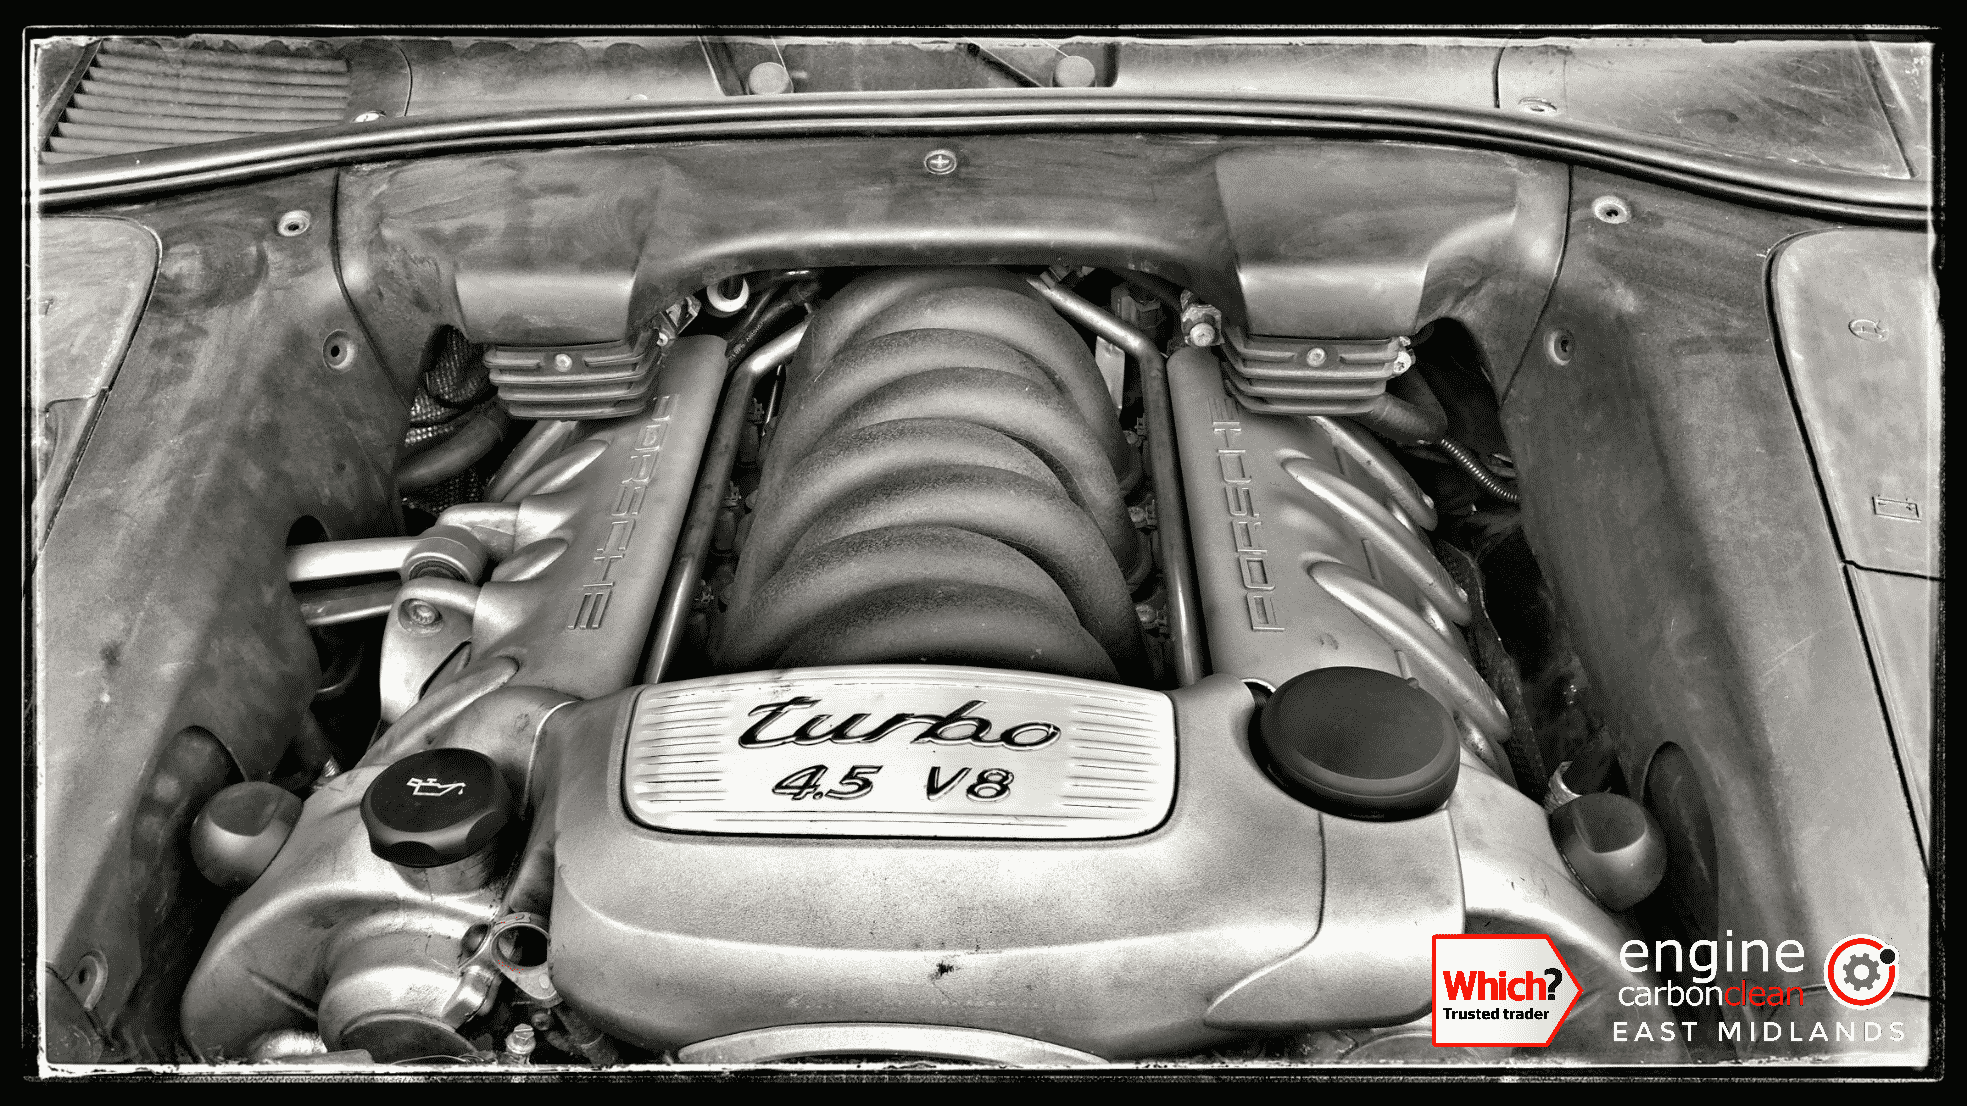 Lack of cooling meant this engine bay was hot! Porsche Cayenne Turbo (2006) - 132,381 miles